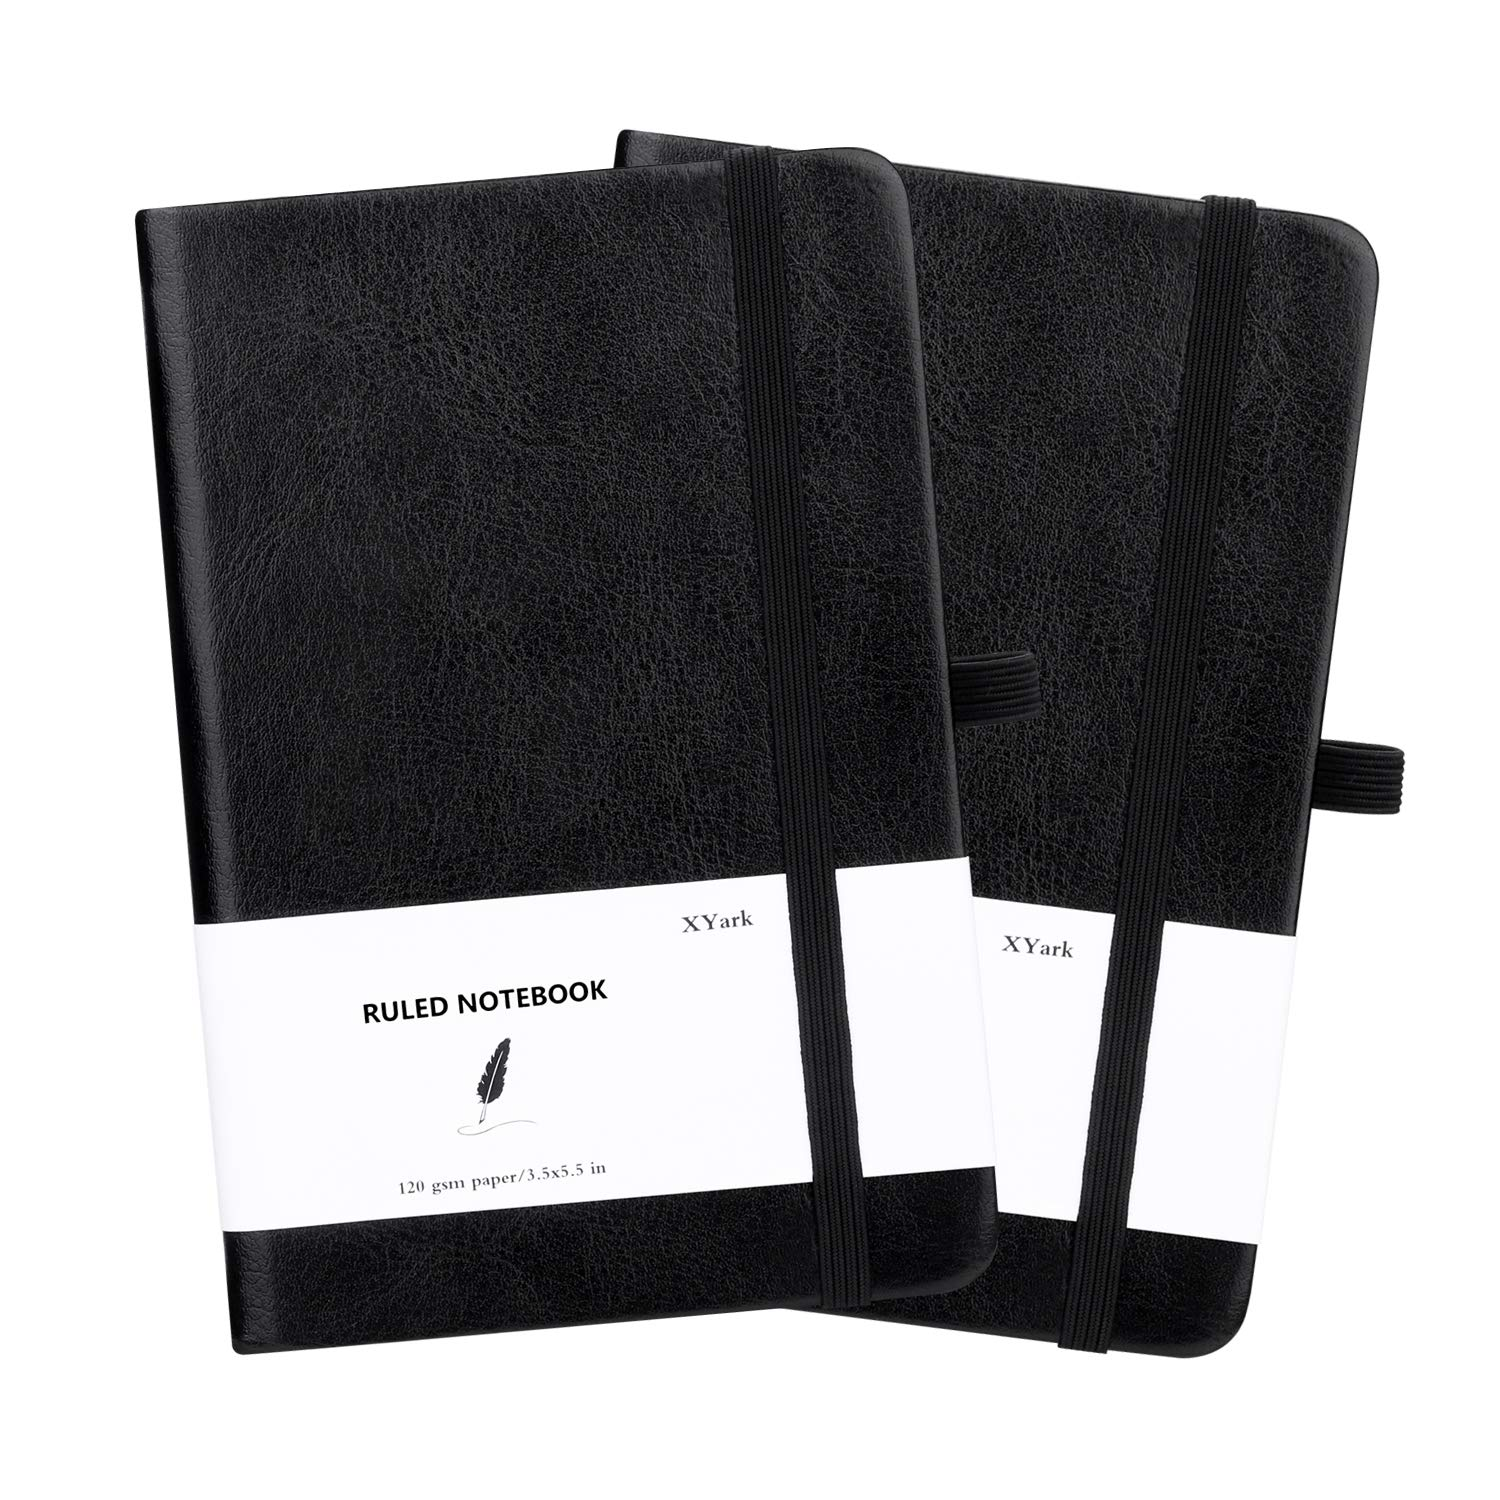 XYark Small Pocket Hard Cover Notebook Journal Bulk, College Ruled, 120GSM Thick Lined Paper with Pen Loop, Black Faux Leather for Travel Memo Writing Diary Planner Notepad, 3.5×5.5 inch, 2 Pack